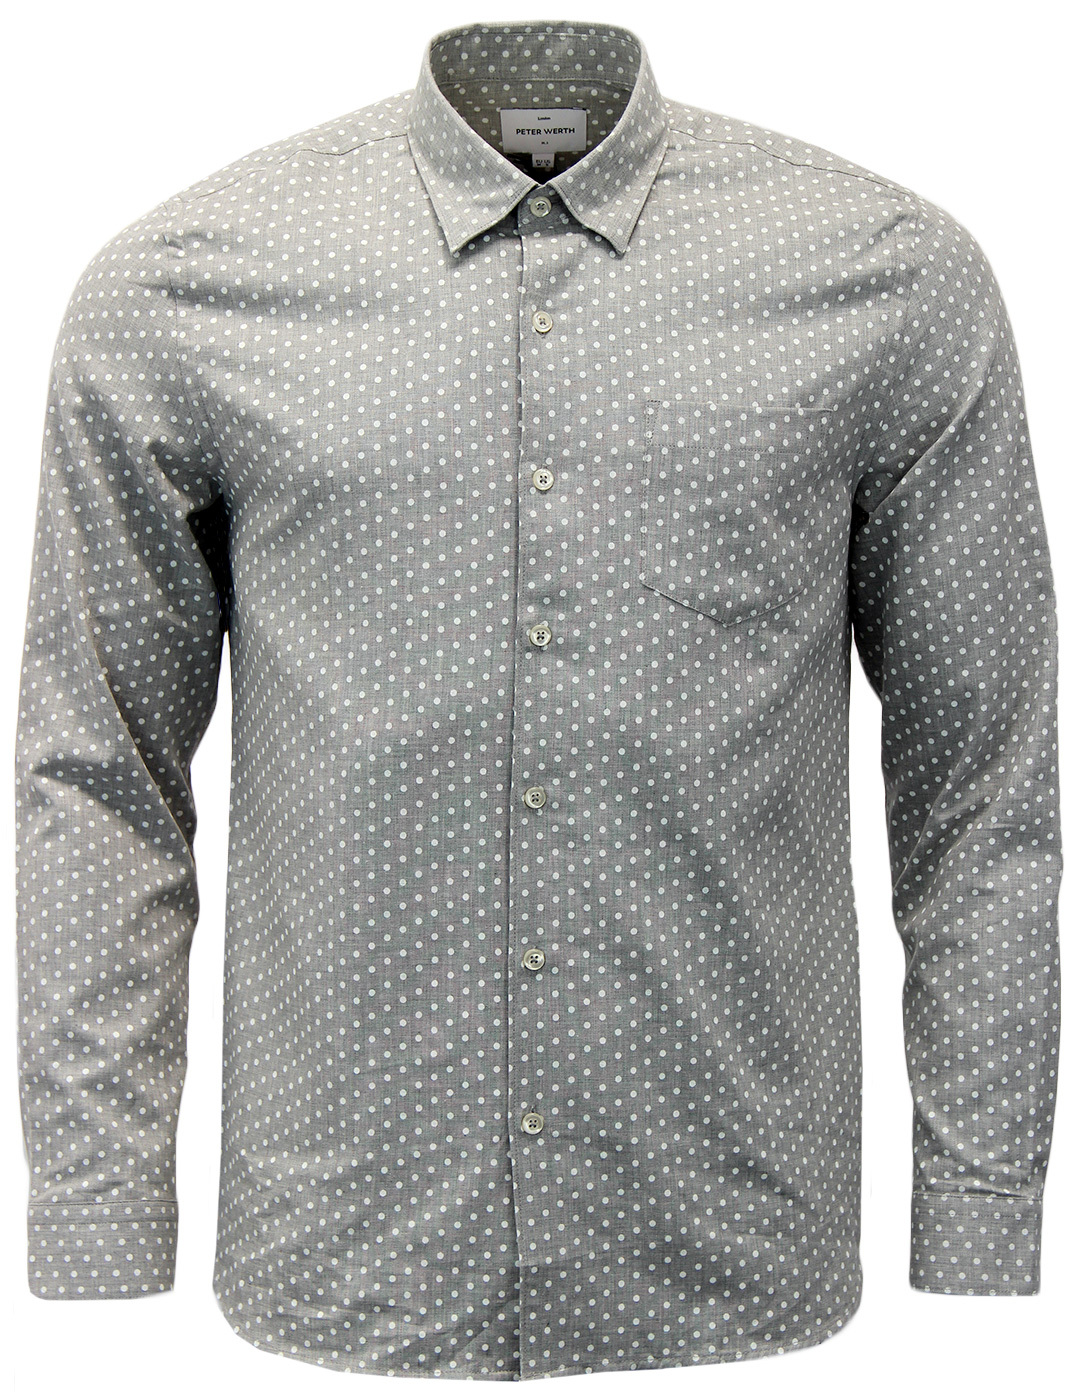 Venture PETER WERTH Retro 60s Mod Polka Dot Shirt